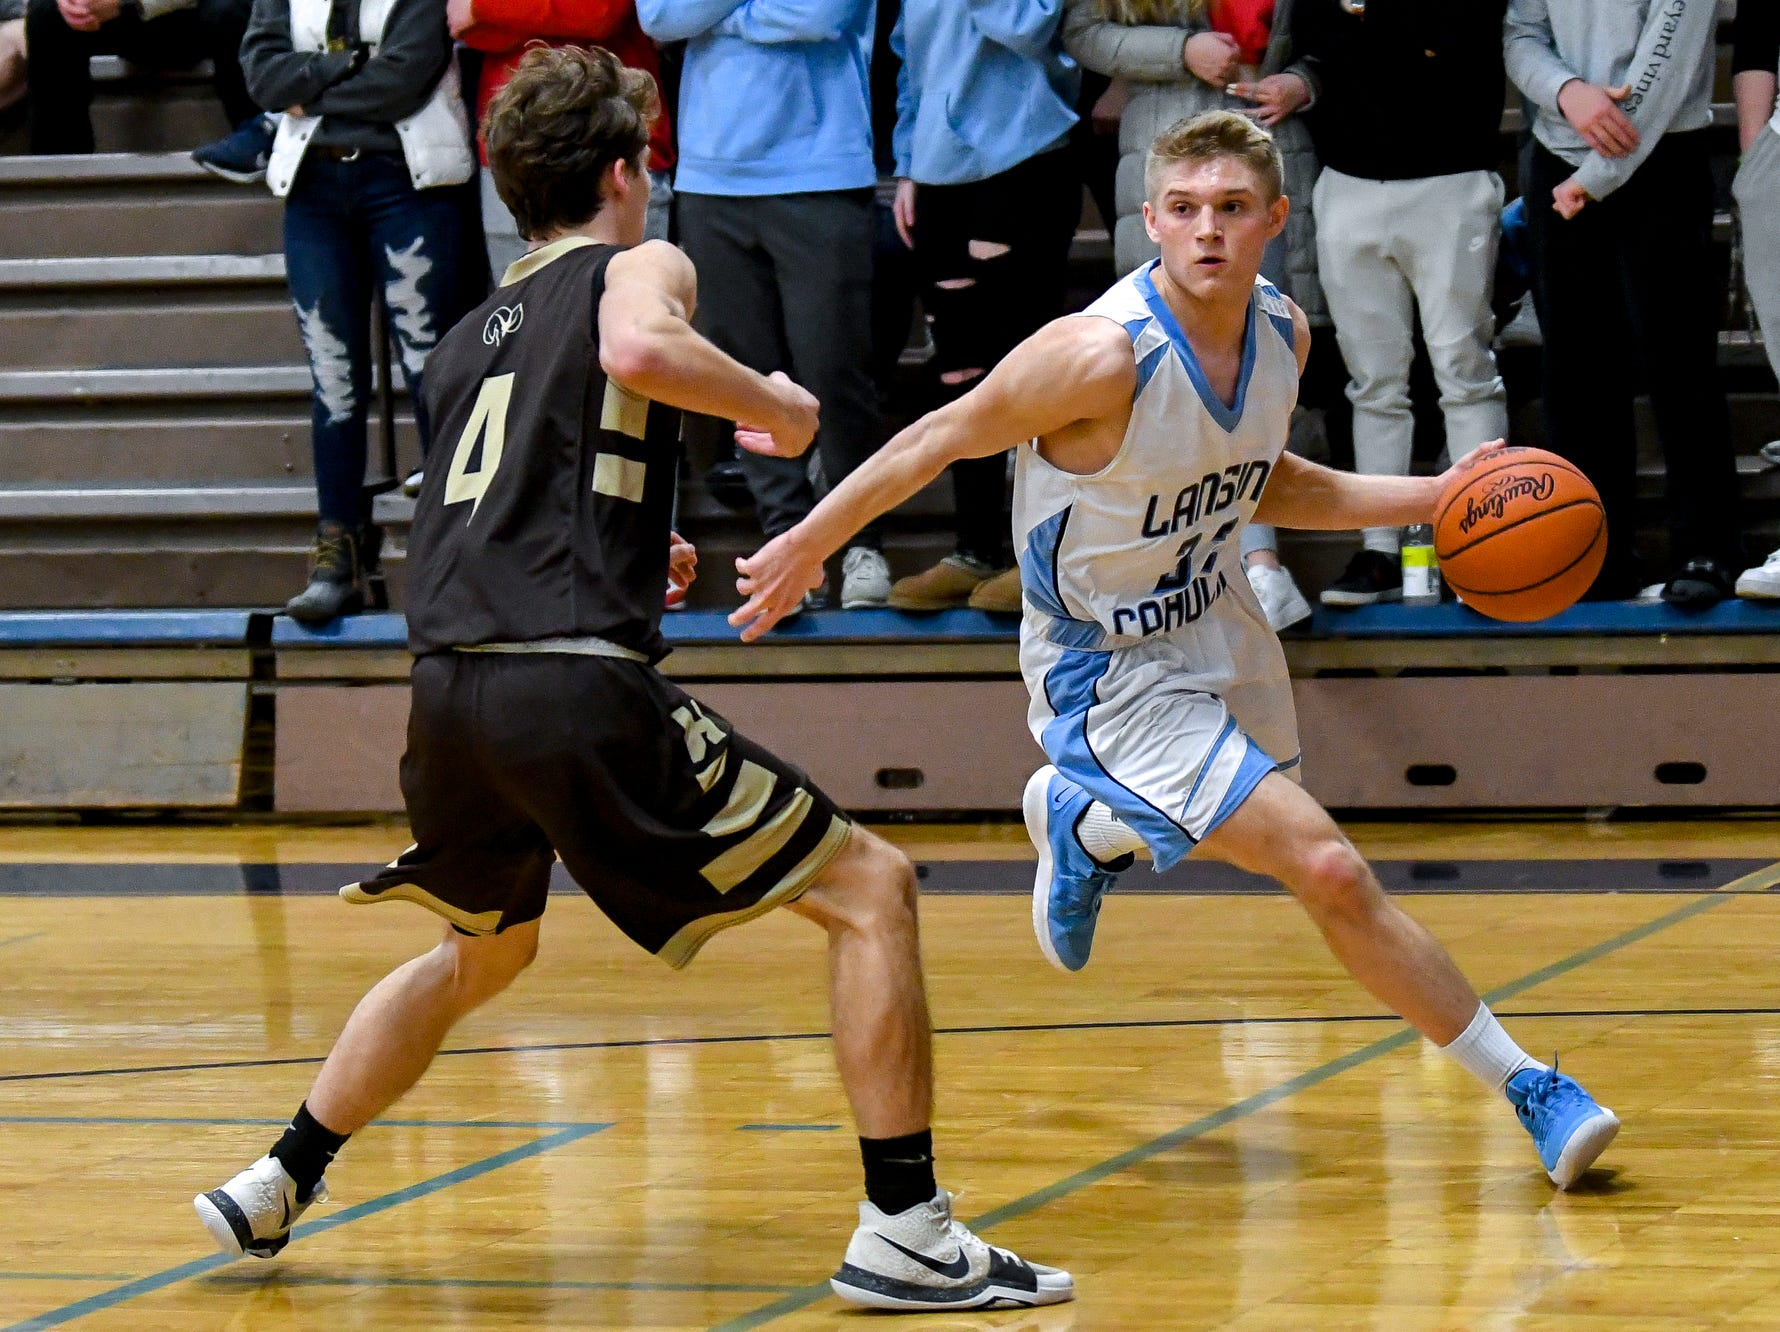 Alex Watters leads second half charge as Lansing Catholic downs Holt